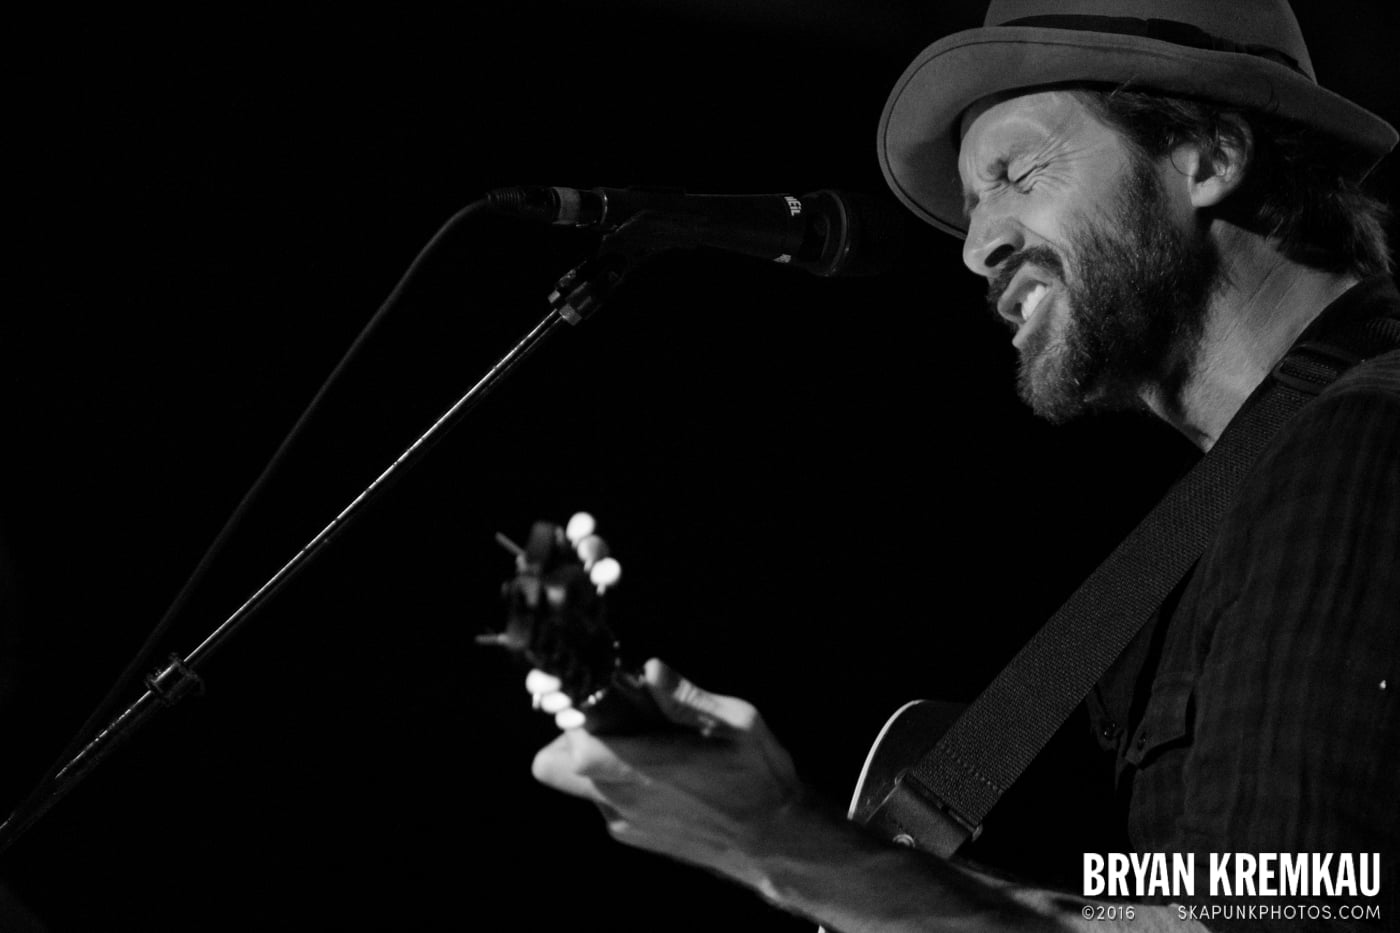 Carbon Leaf @ City Winery, NYC - July 11th 2013 - Bryan Kremkau (18)